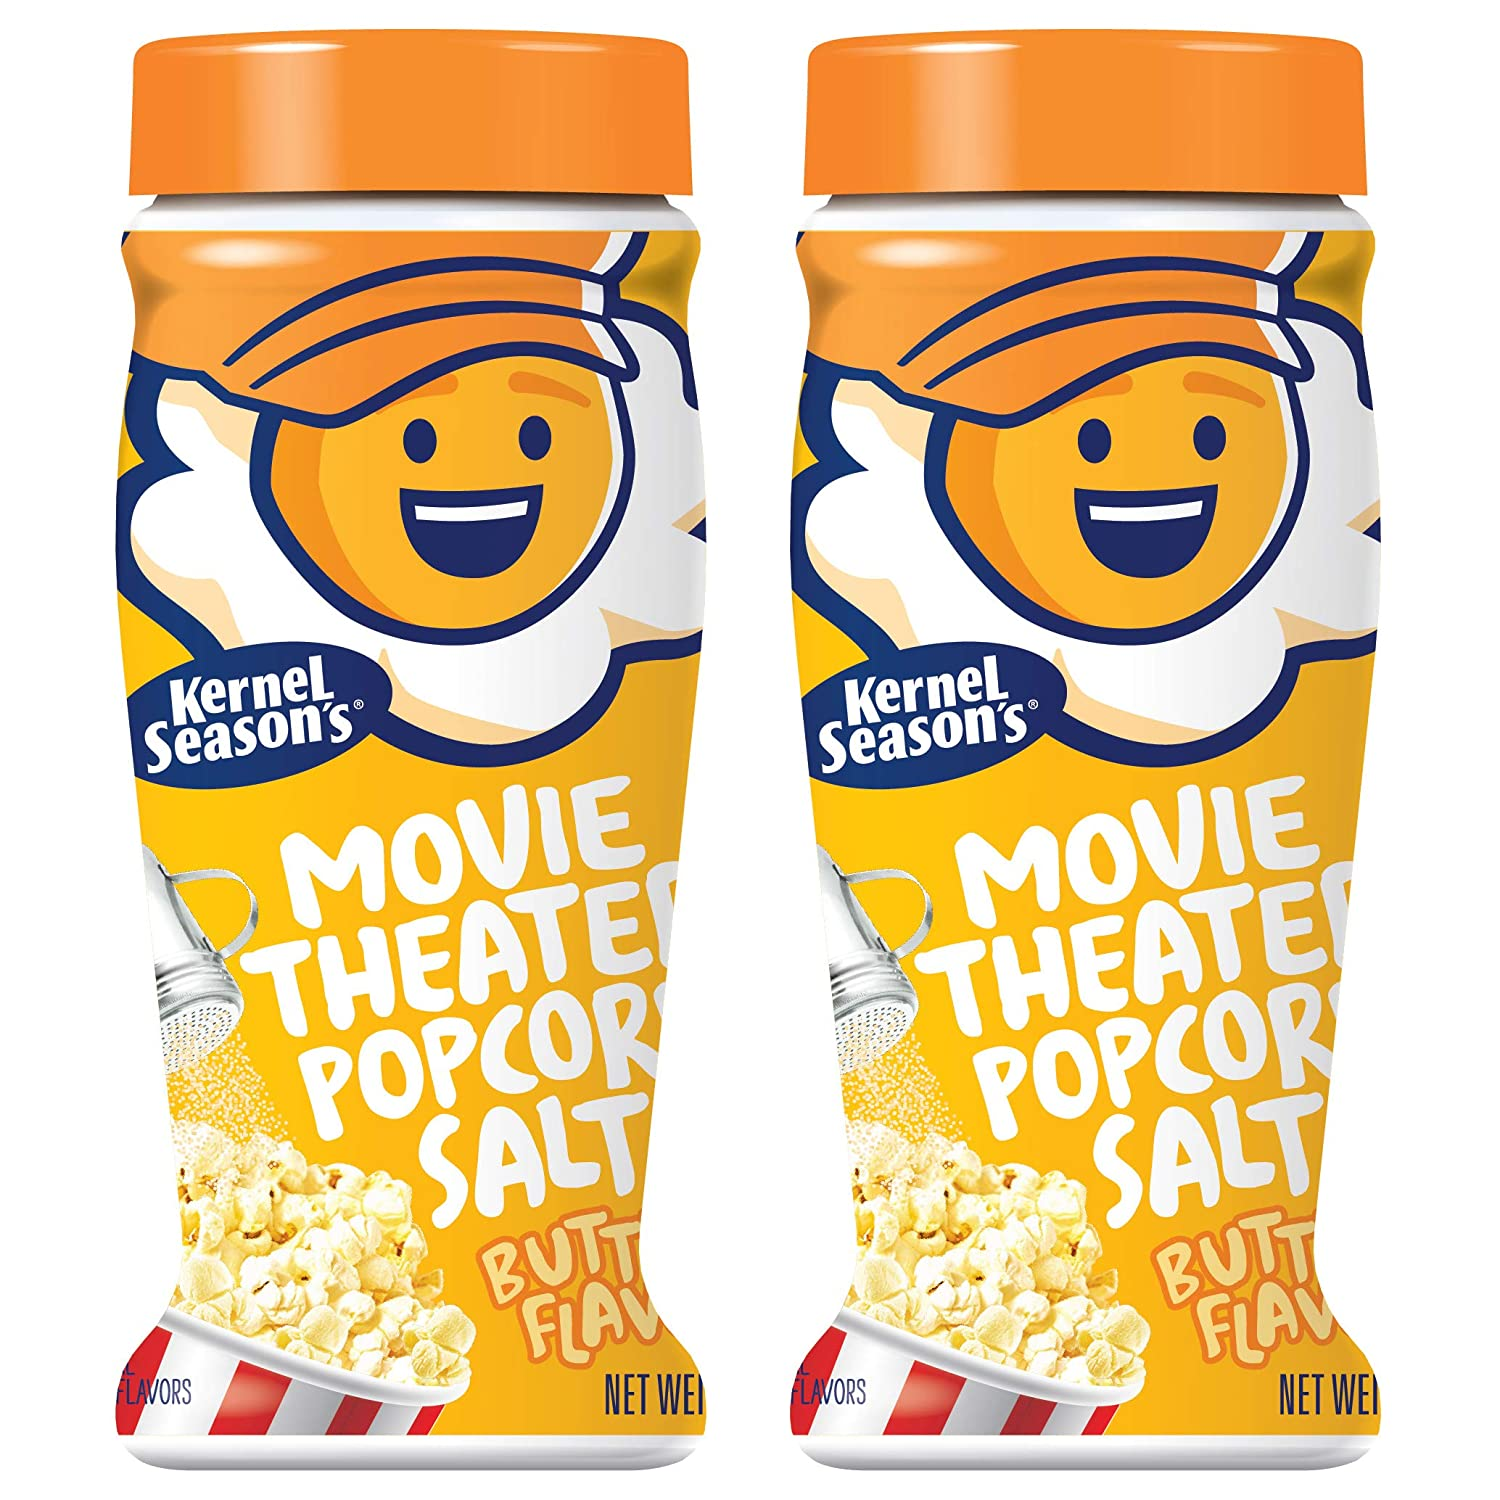 Amazon Com Kernel Season S Popcorn Seasoning Jumbo Movie Theater Butter Variety Pack Salt 2 Count Grocery Gourmet Food